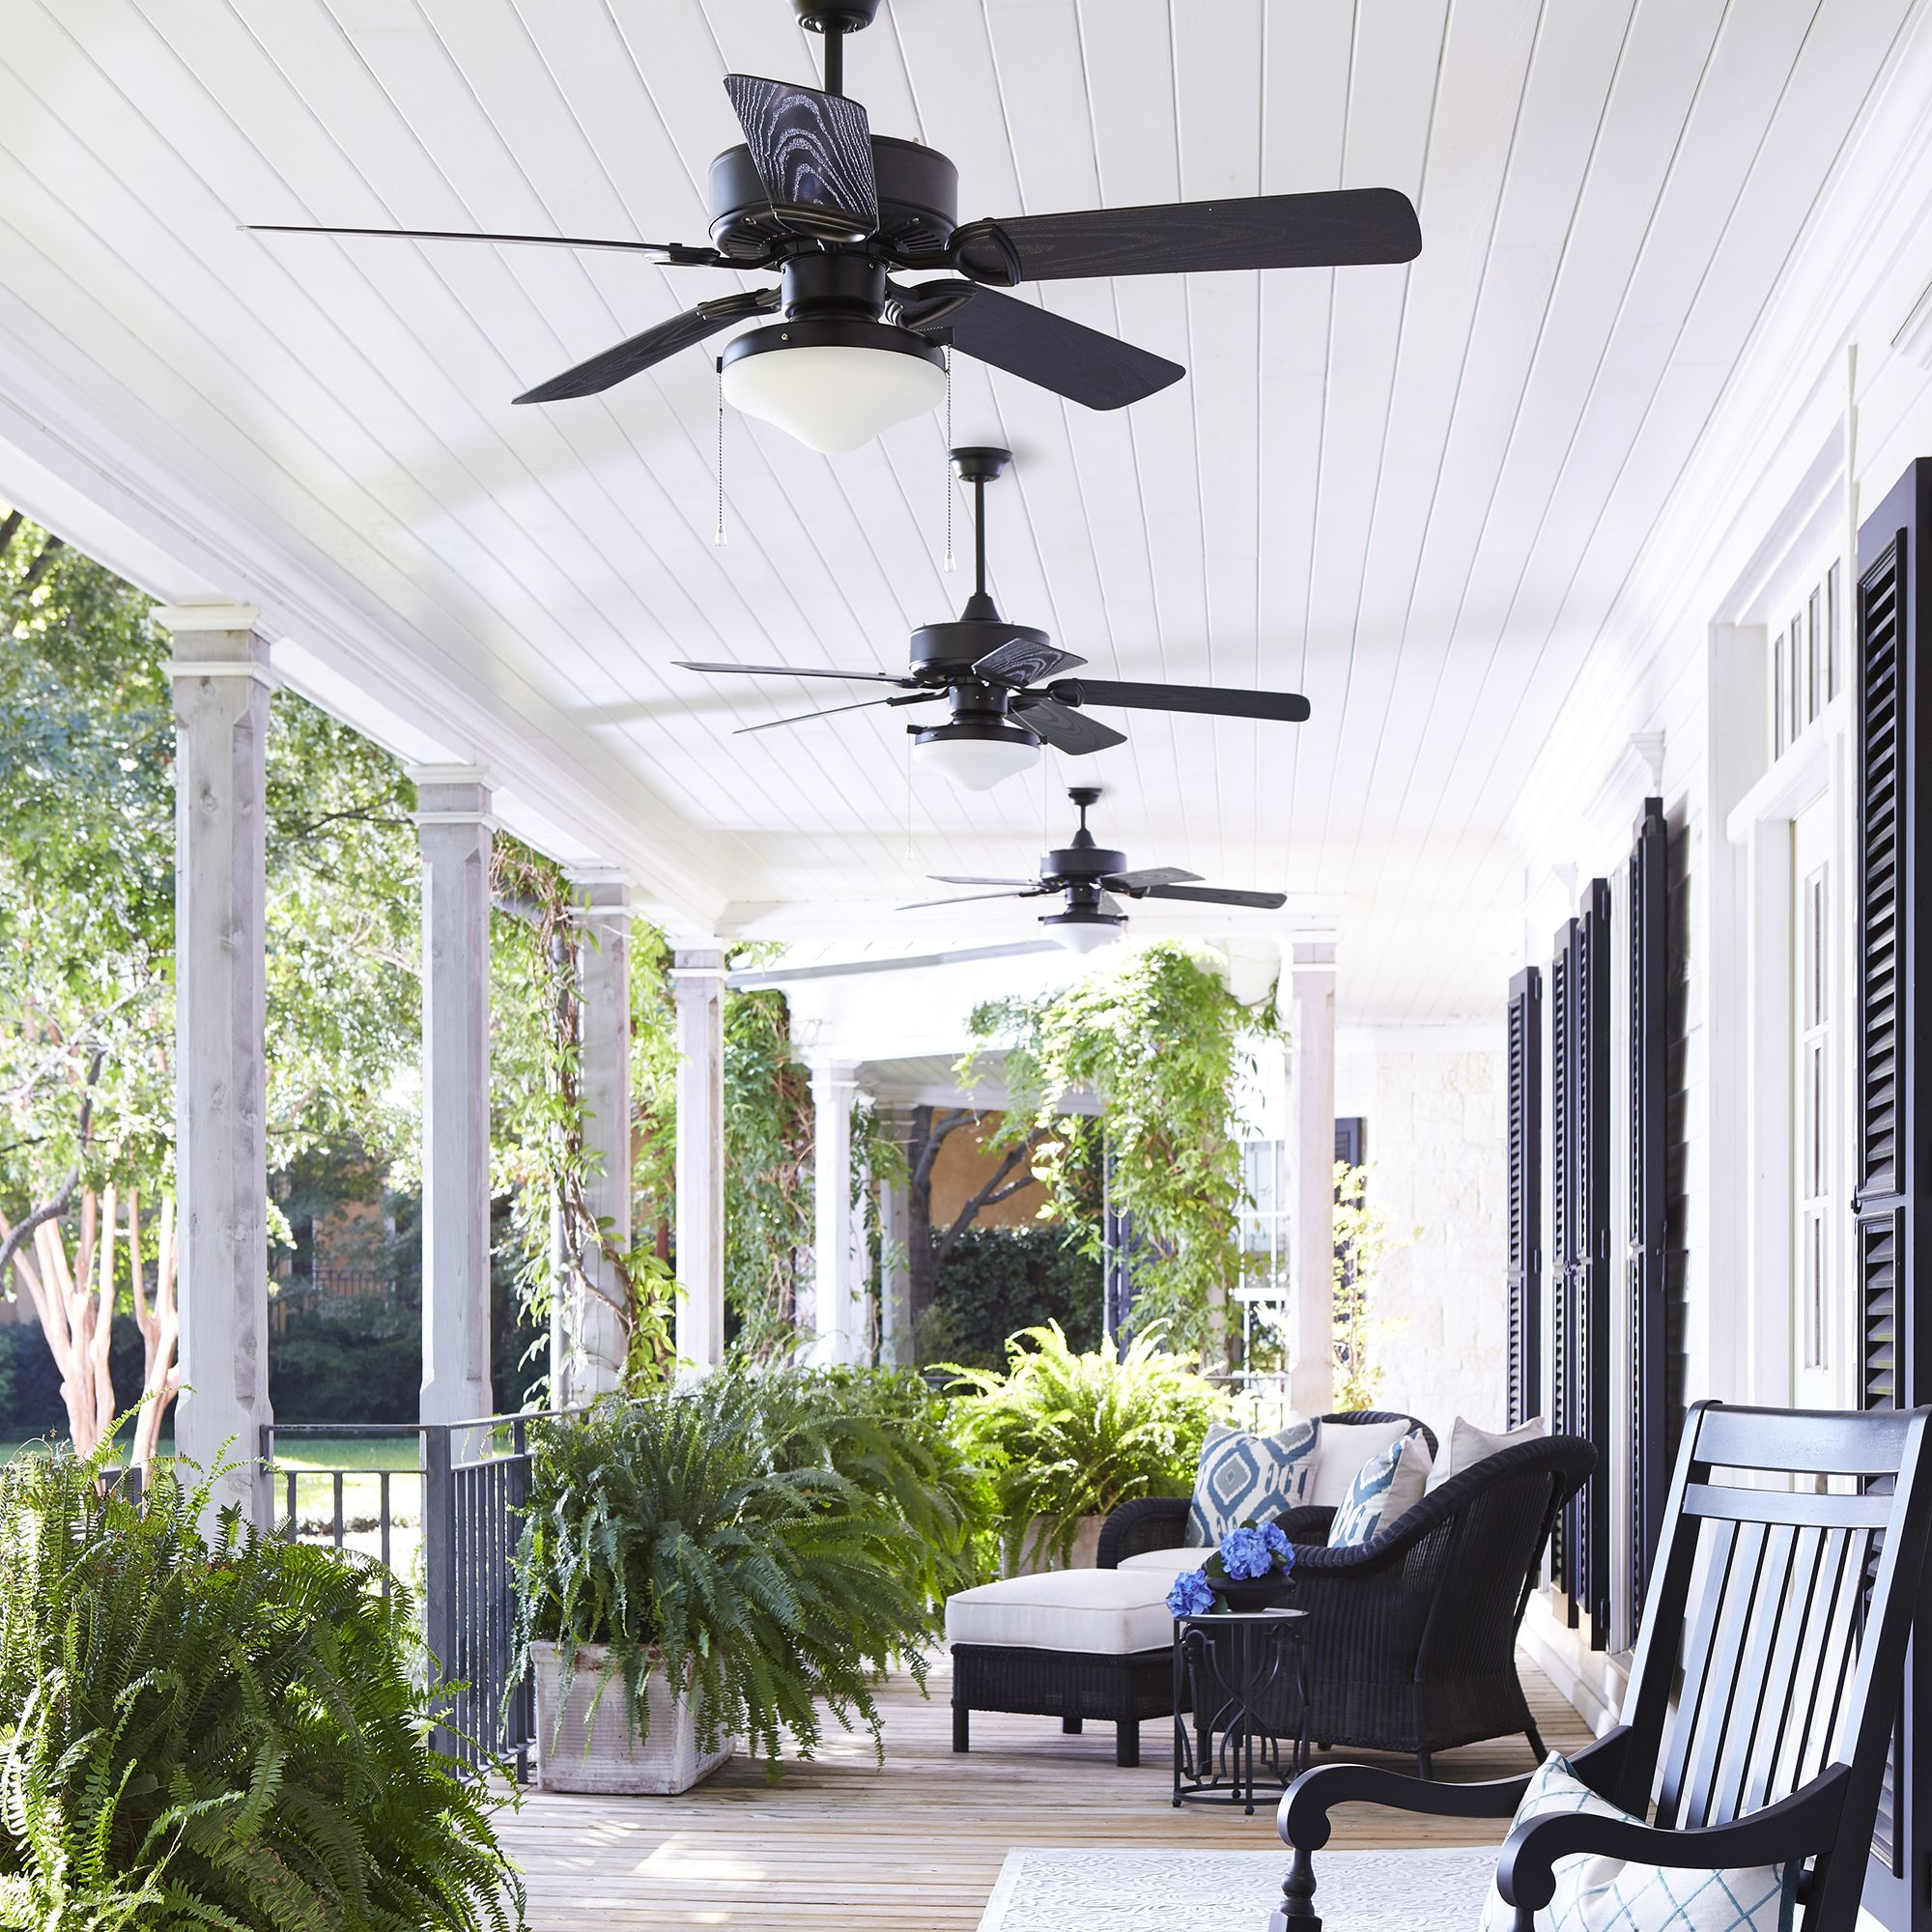 Estate 52 Patio Fan With Light Kit In 2020 Patio Fan Outdoor